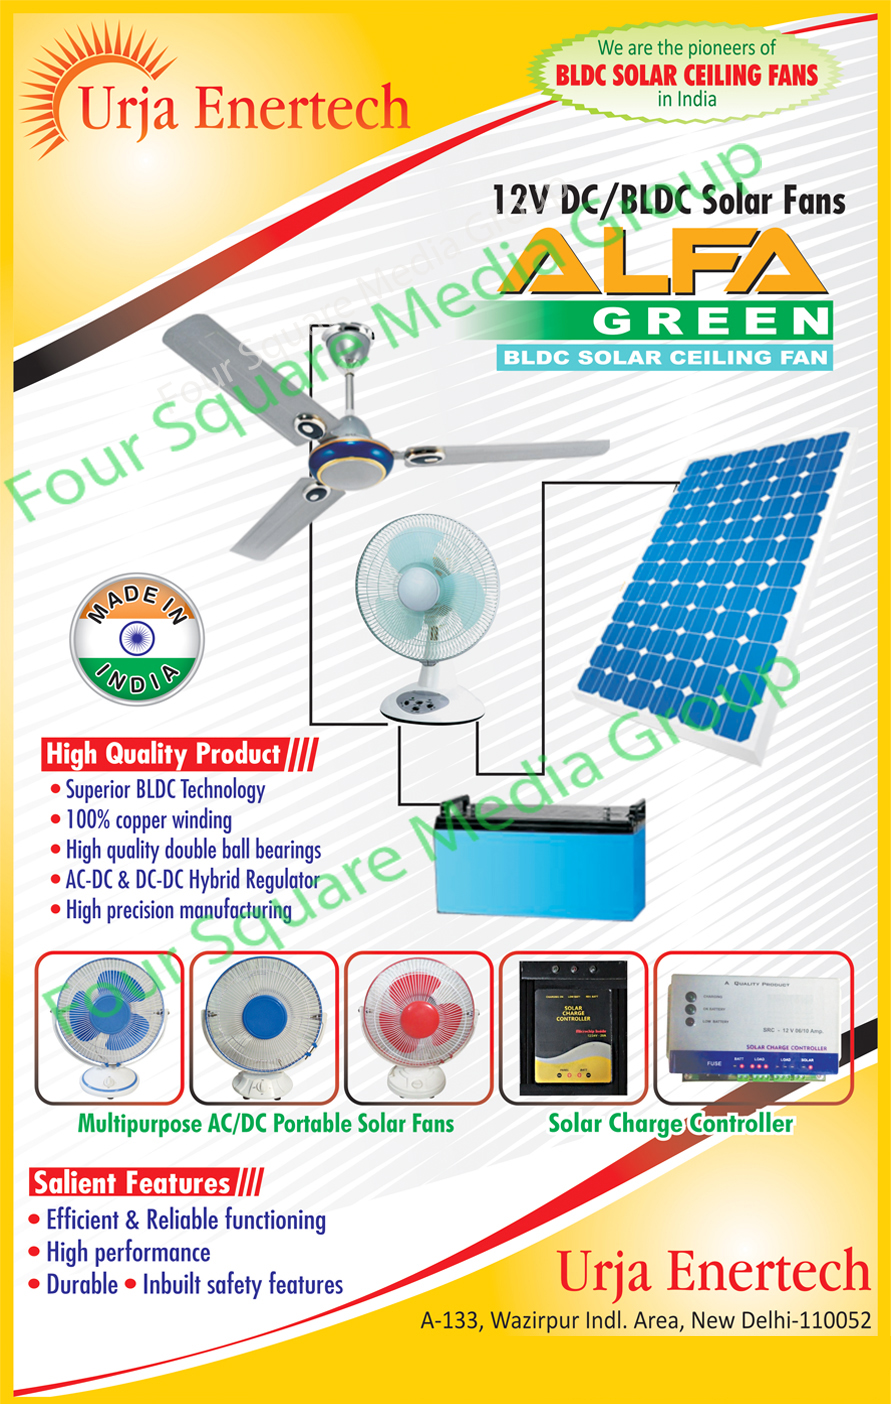 AC Portable solar Fan, DC Portable Solar Fan, Solar Fans, Solar Ceiling Fans, Solar Charge Controller, Led Bulbs, Led Lights, Led Panel Lights, Led Tube Lights,Solar Charge Controller, Solar DC Fan, Home Light Systems, Solar DC Led Bulbs, Solar Lanterns